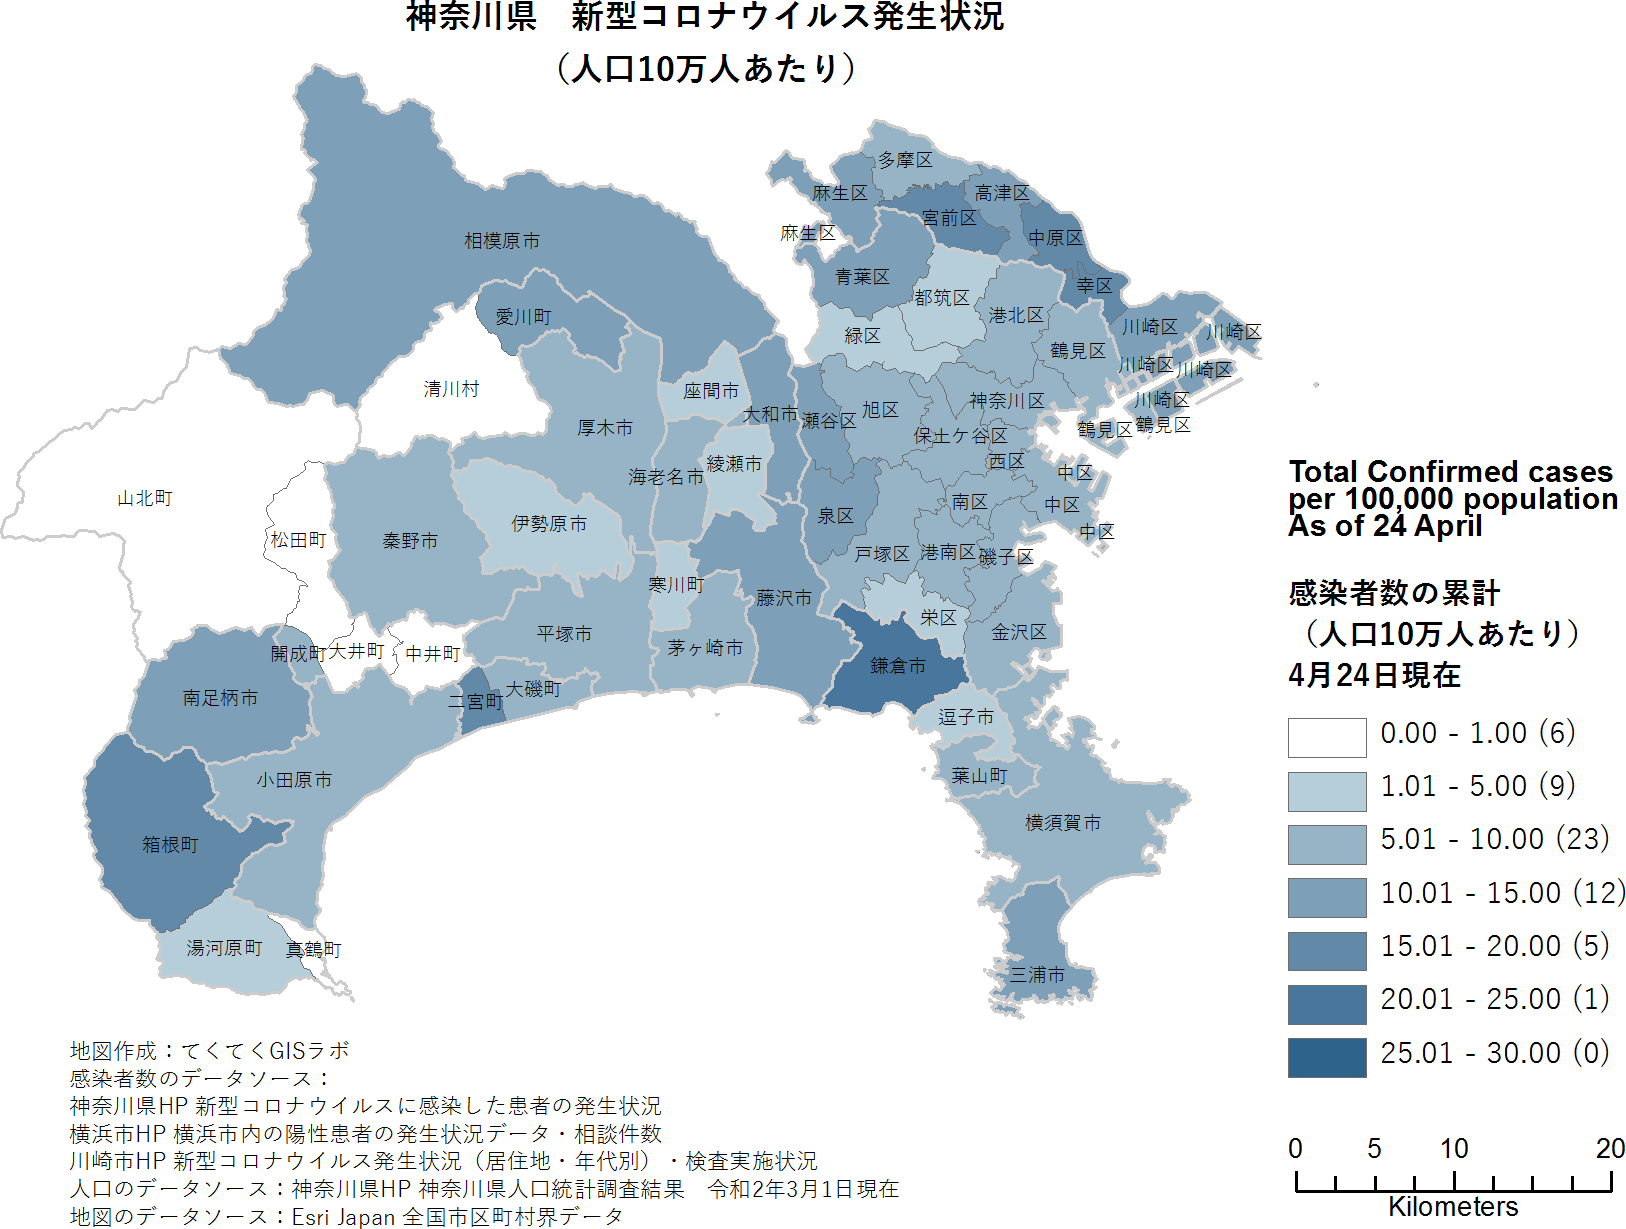 Number of cases in Kanagawa